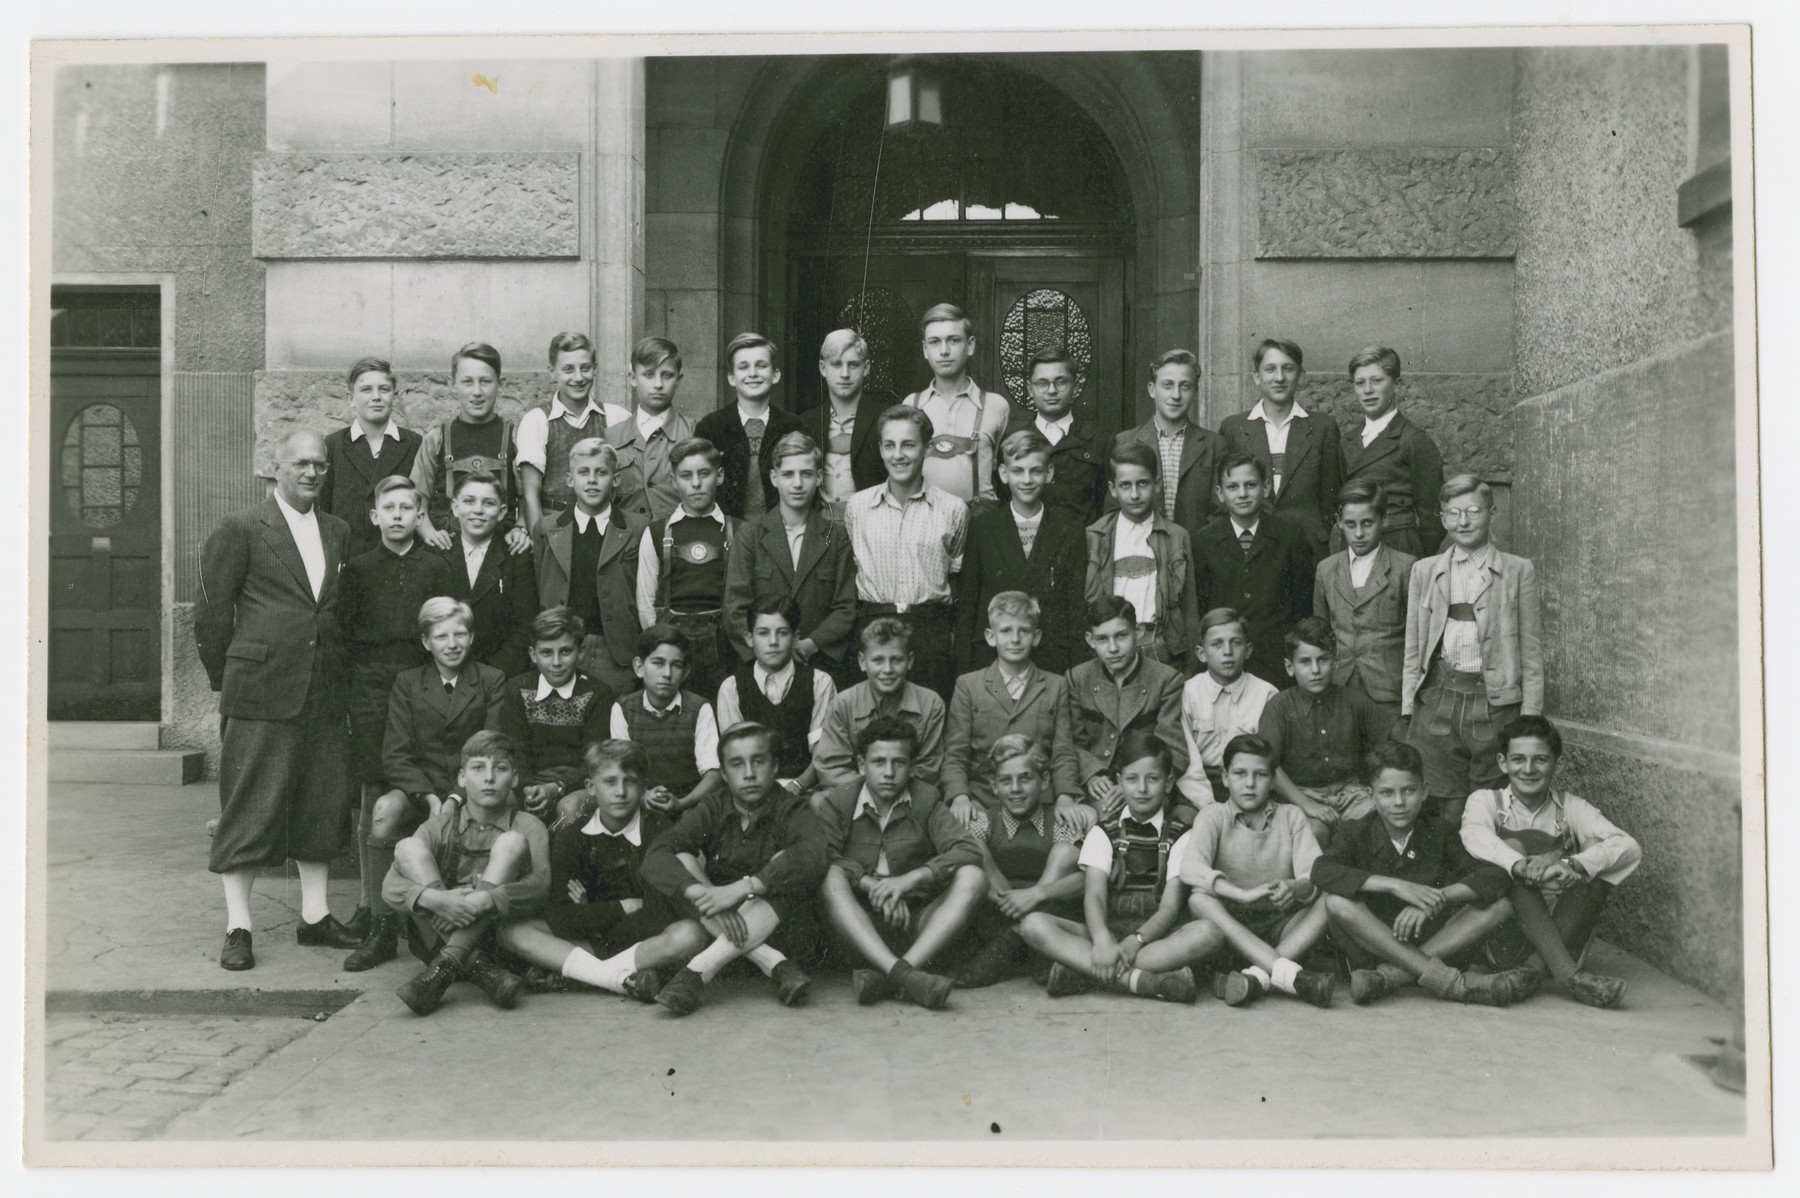 Group portrait of boys in a school in poswar Esslingen, Germany.  Jerzy Ogurek is seated at the bottom right.  He was the only Jew in his class.